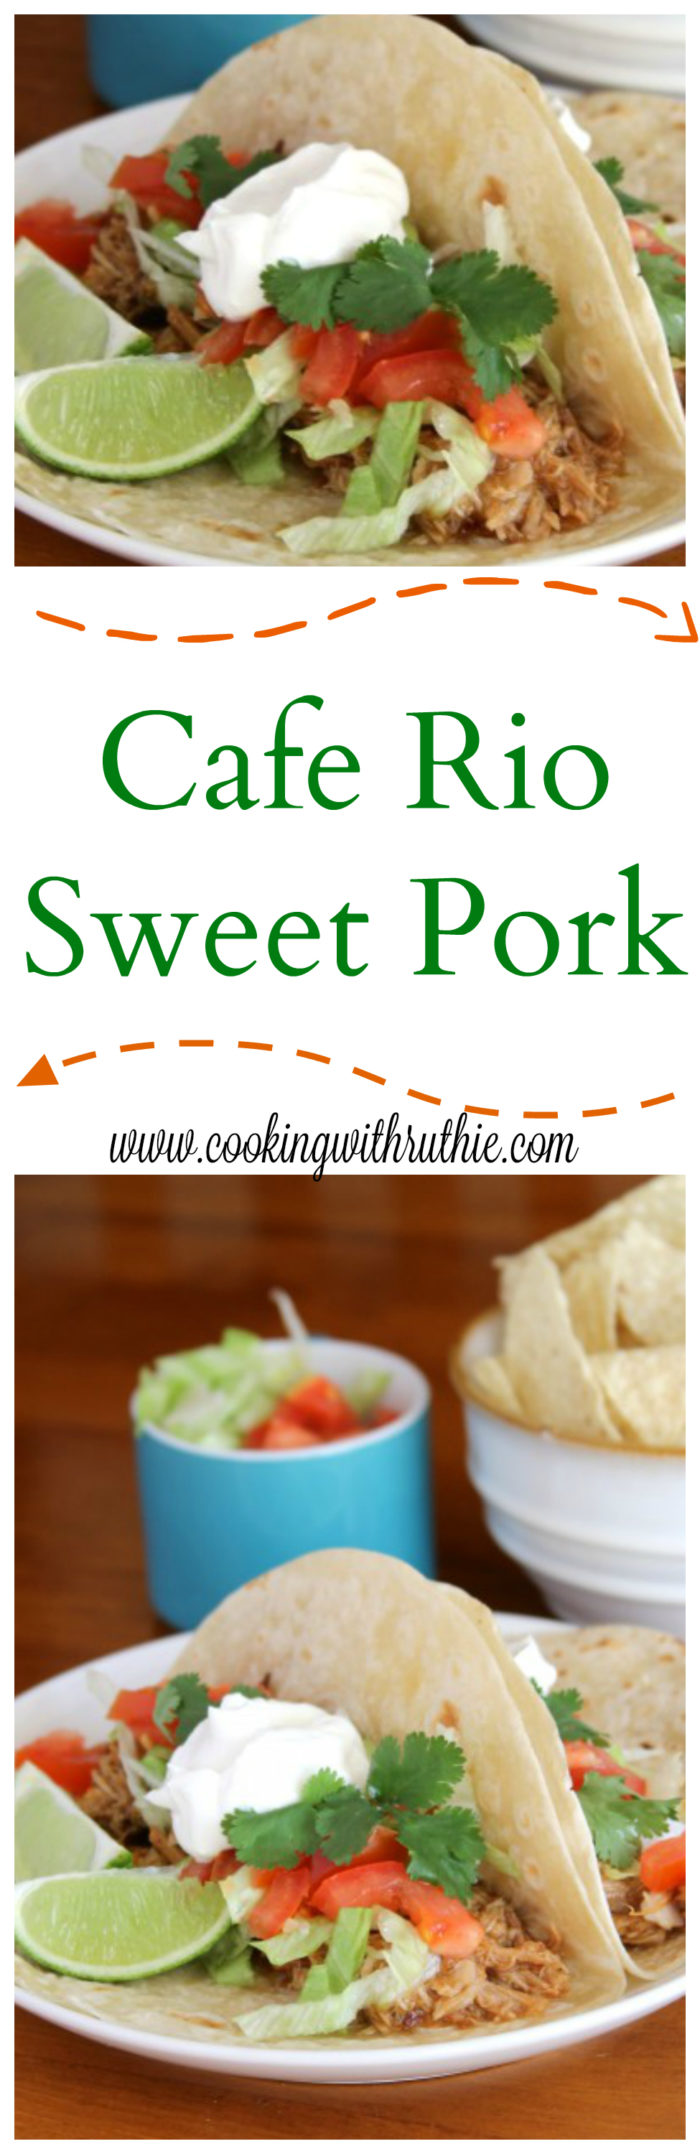 Cafe Rio Sweet Pork (copycat) on www.cookingwithruthie.com is a crock-pot dinner that is so versatile, you can make burritos, tacos, nachos... you'll be in love with it!